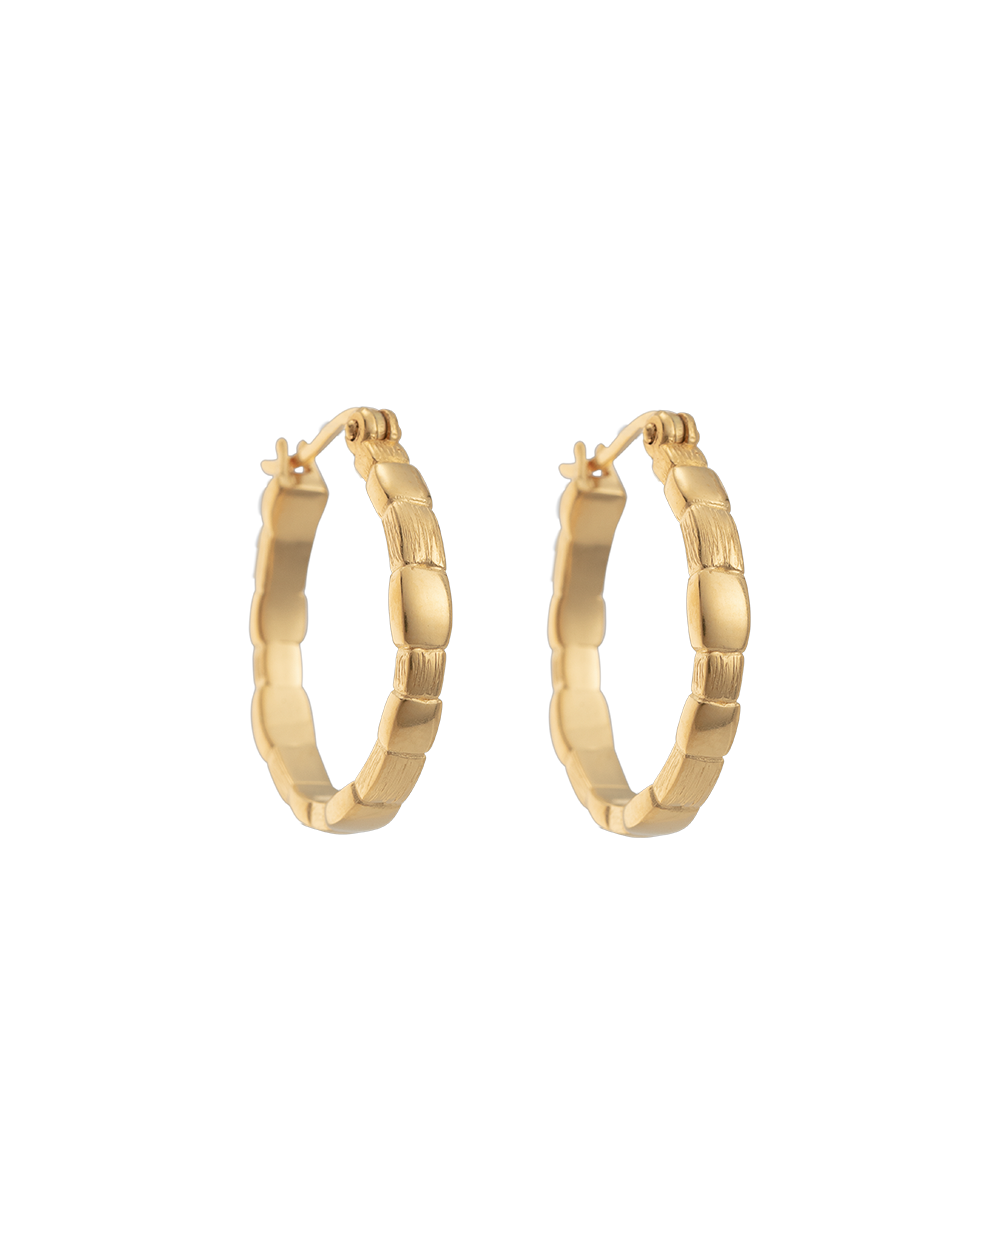 CASCADE HOOPS (18K-GOLD-PLATED) - FRONT